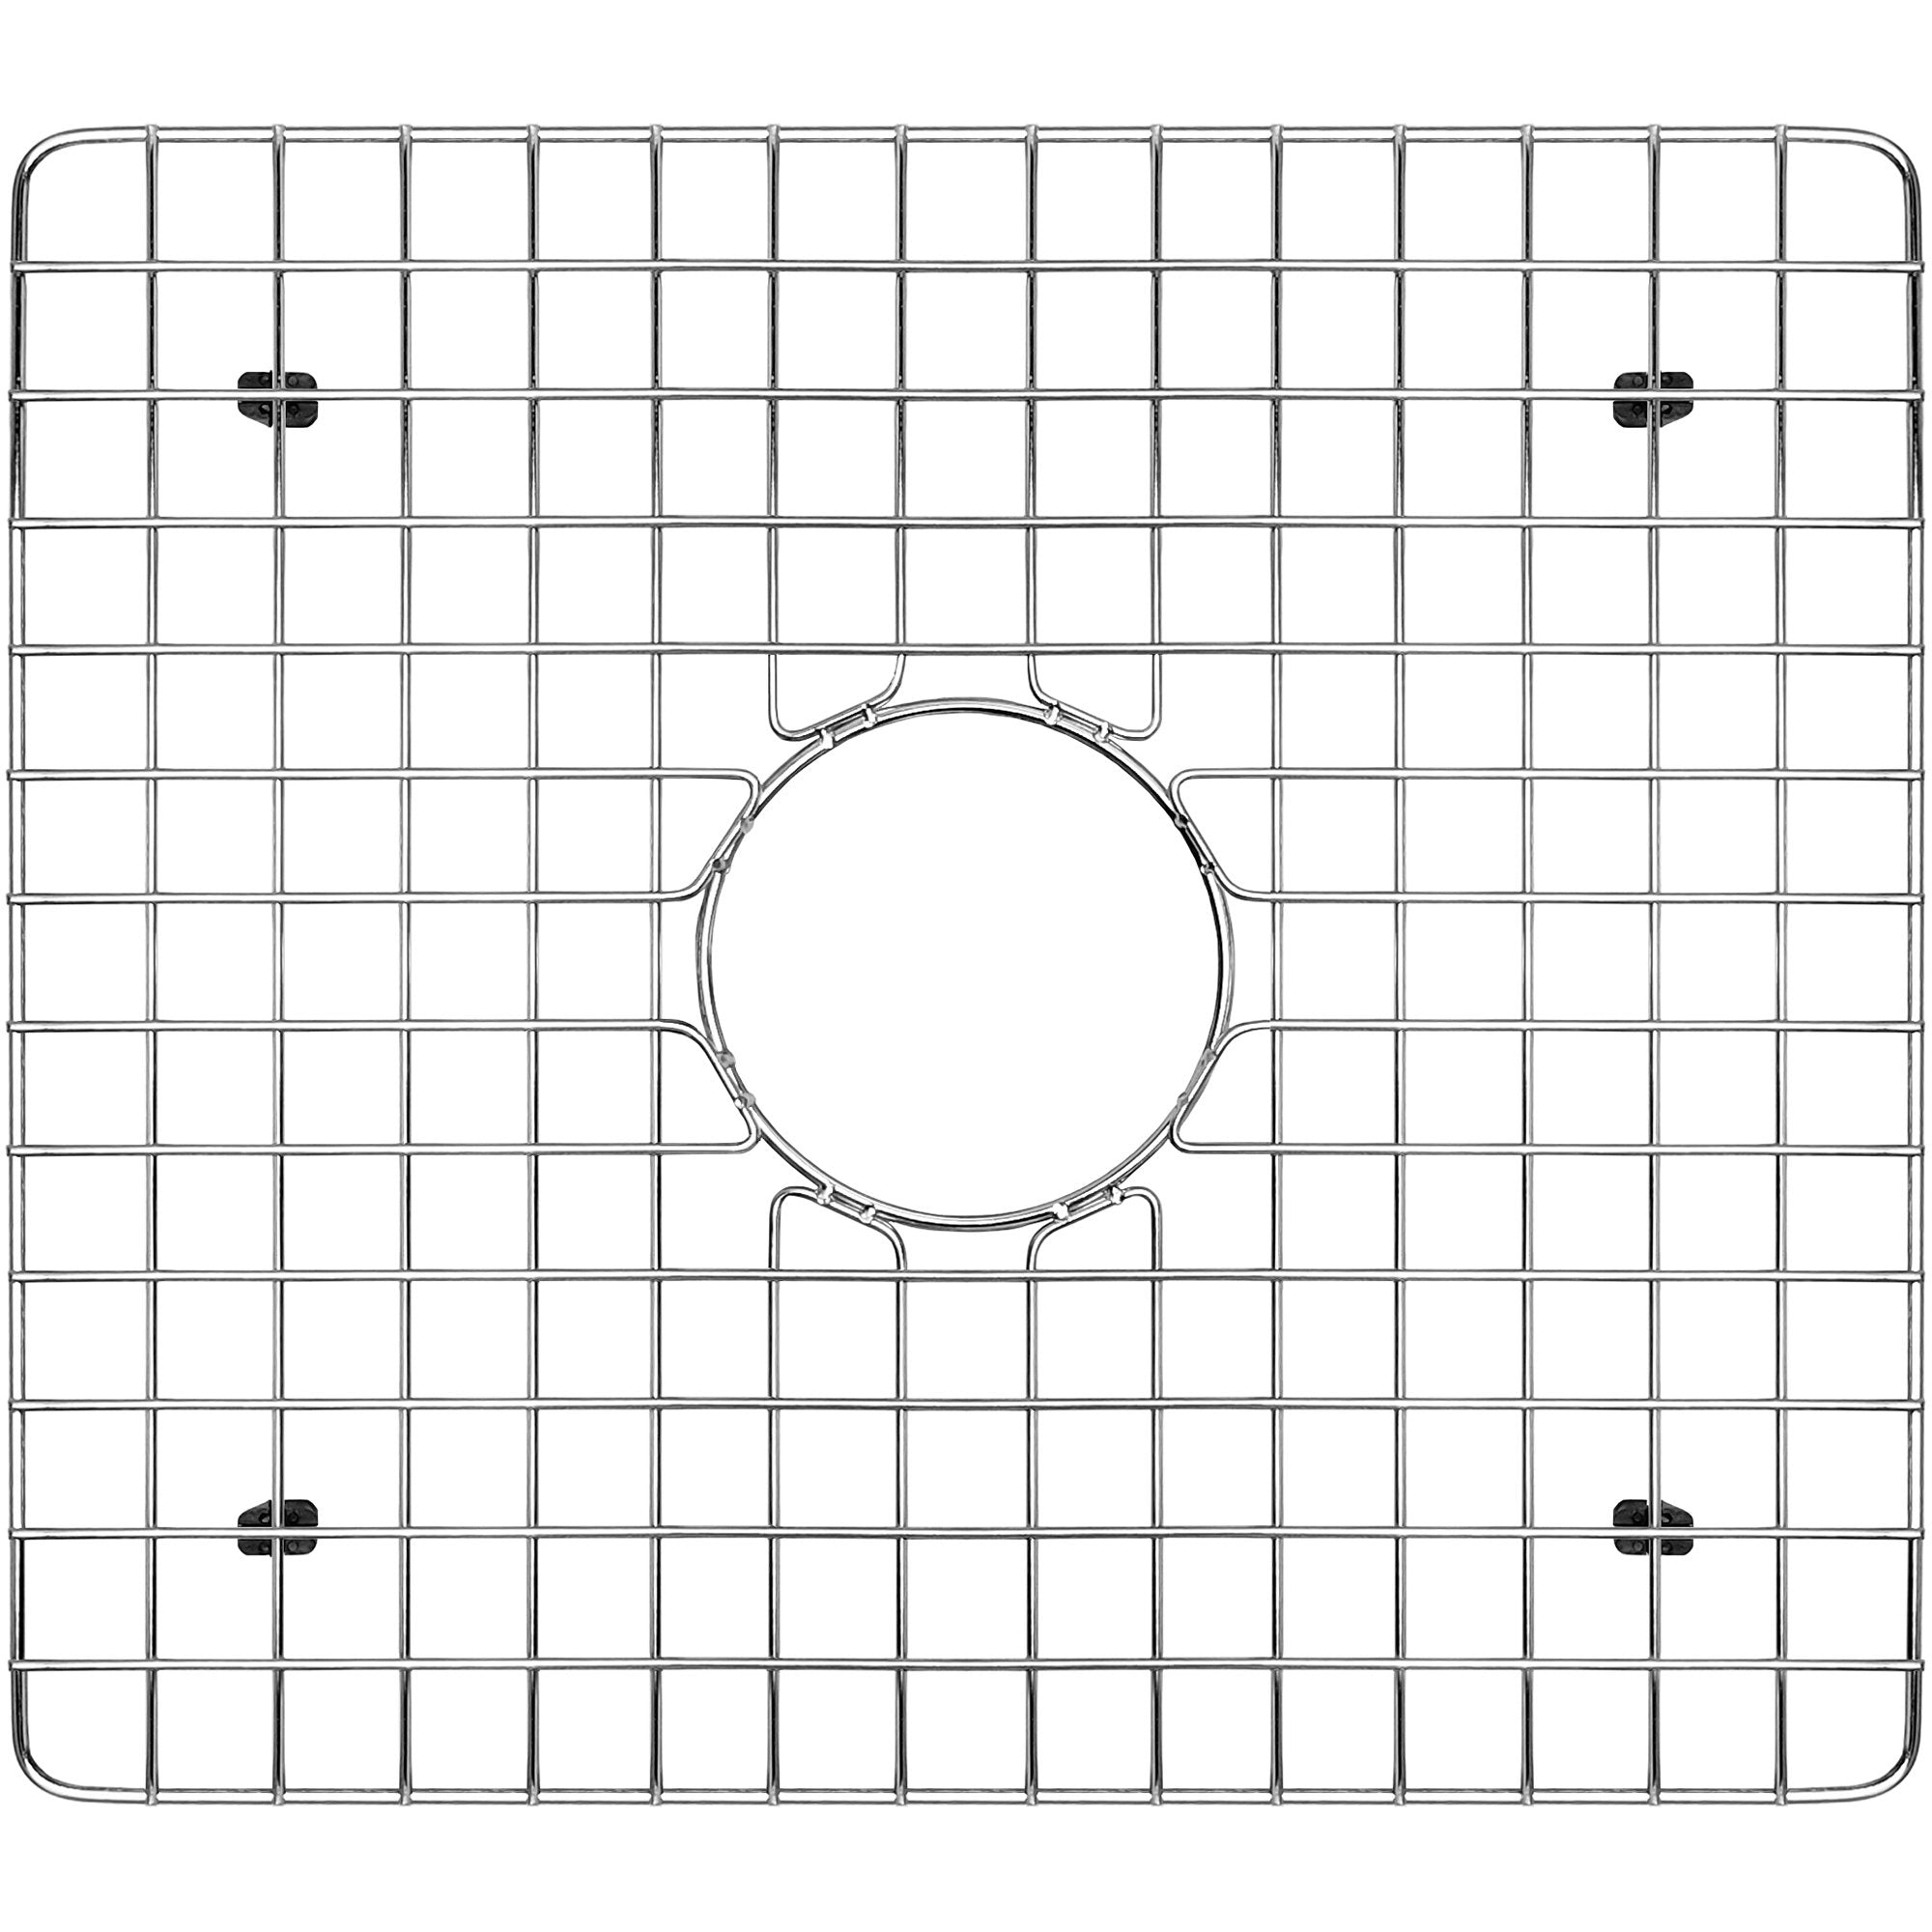 Stainless Steel Kitchen Sink Grid For Noah's Sink Model WHNCM4019